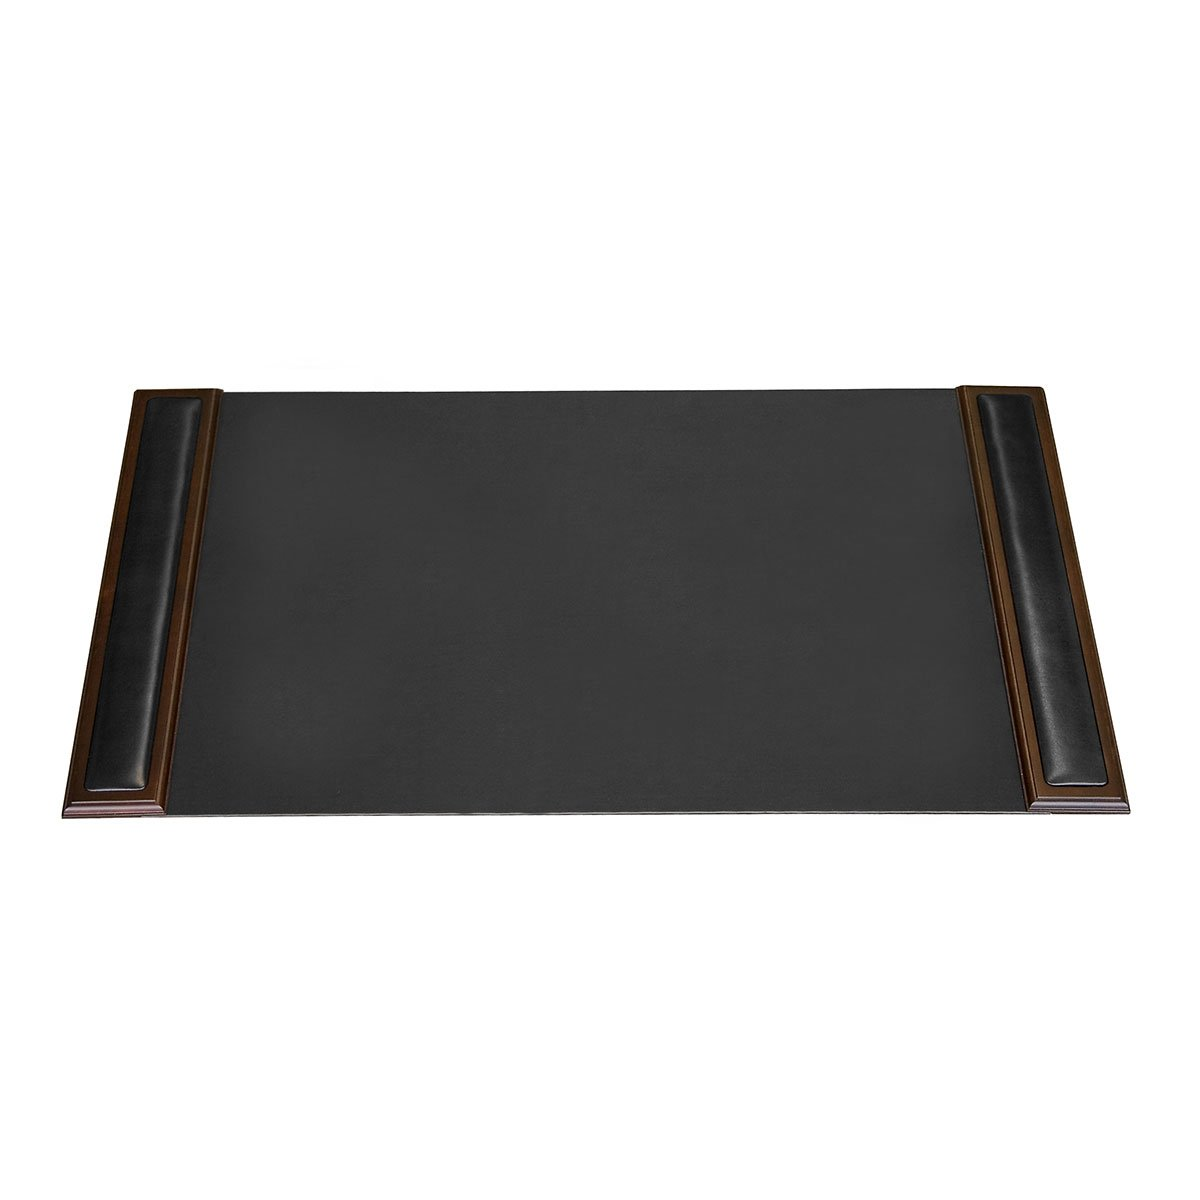 Dacasso Walnut and Leather Desk Pad with Side-rails,34 by 20 Inch